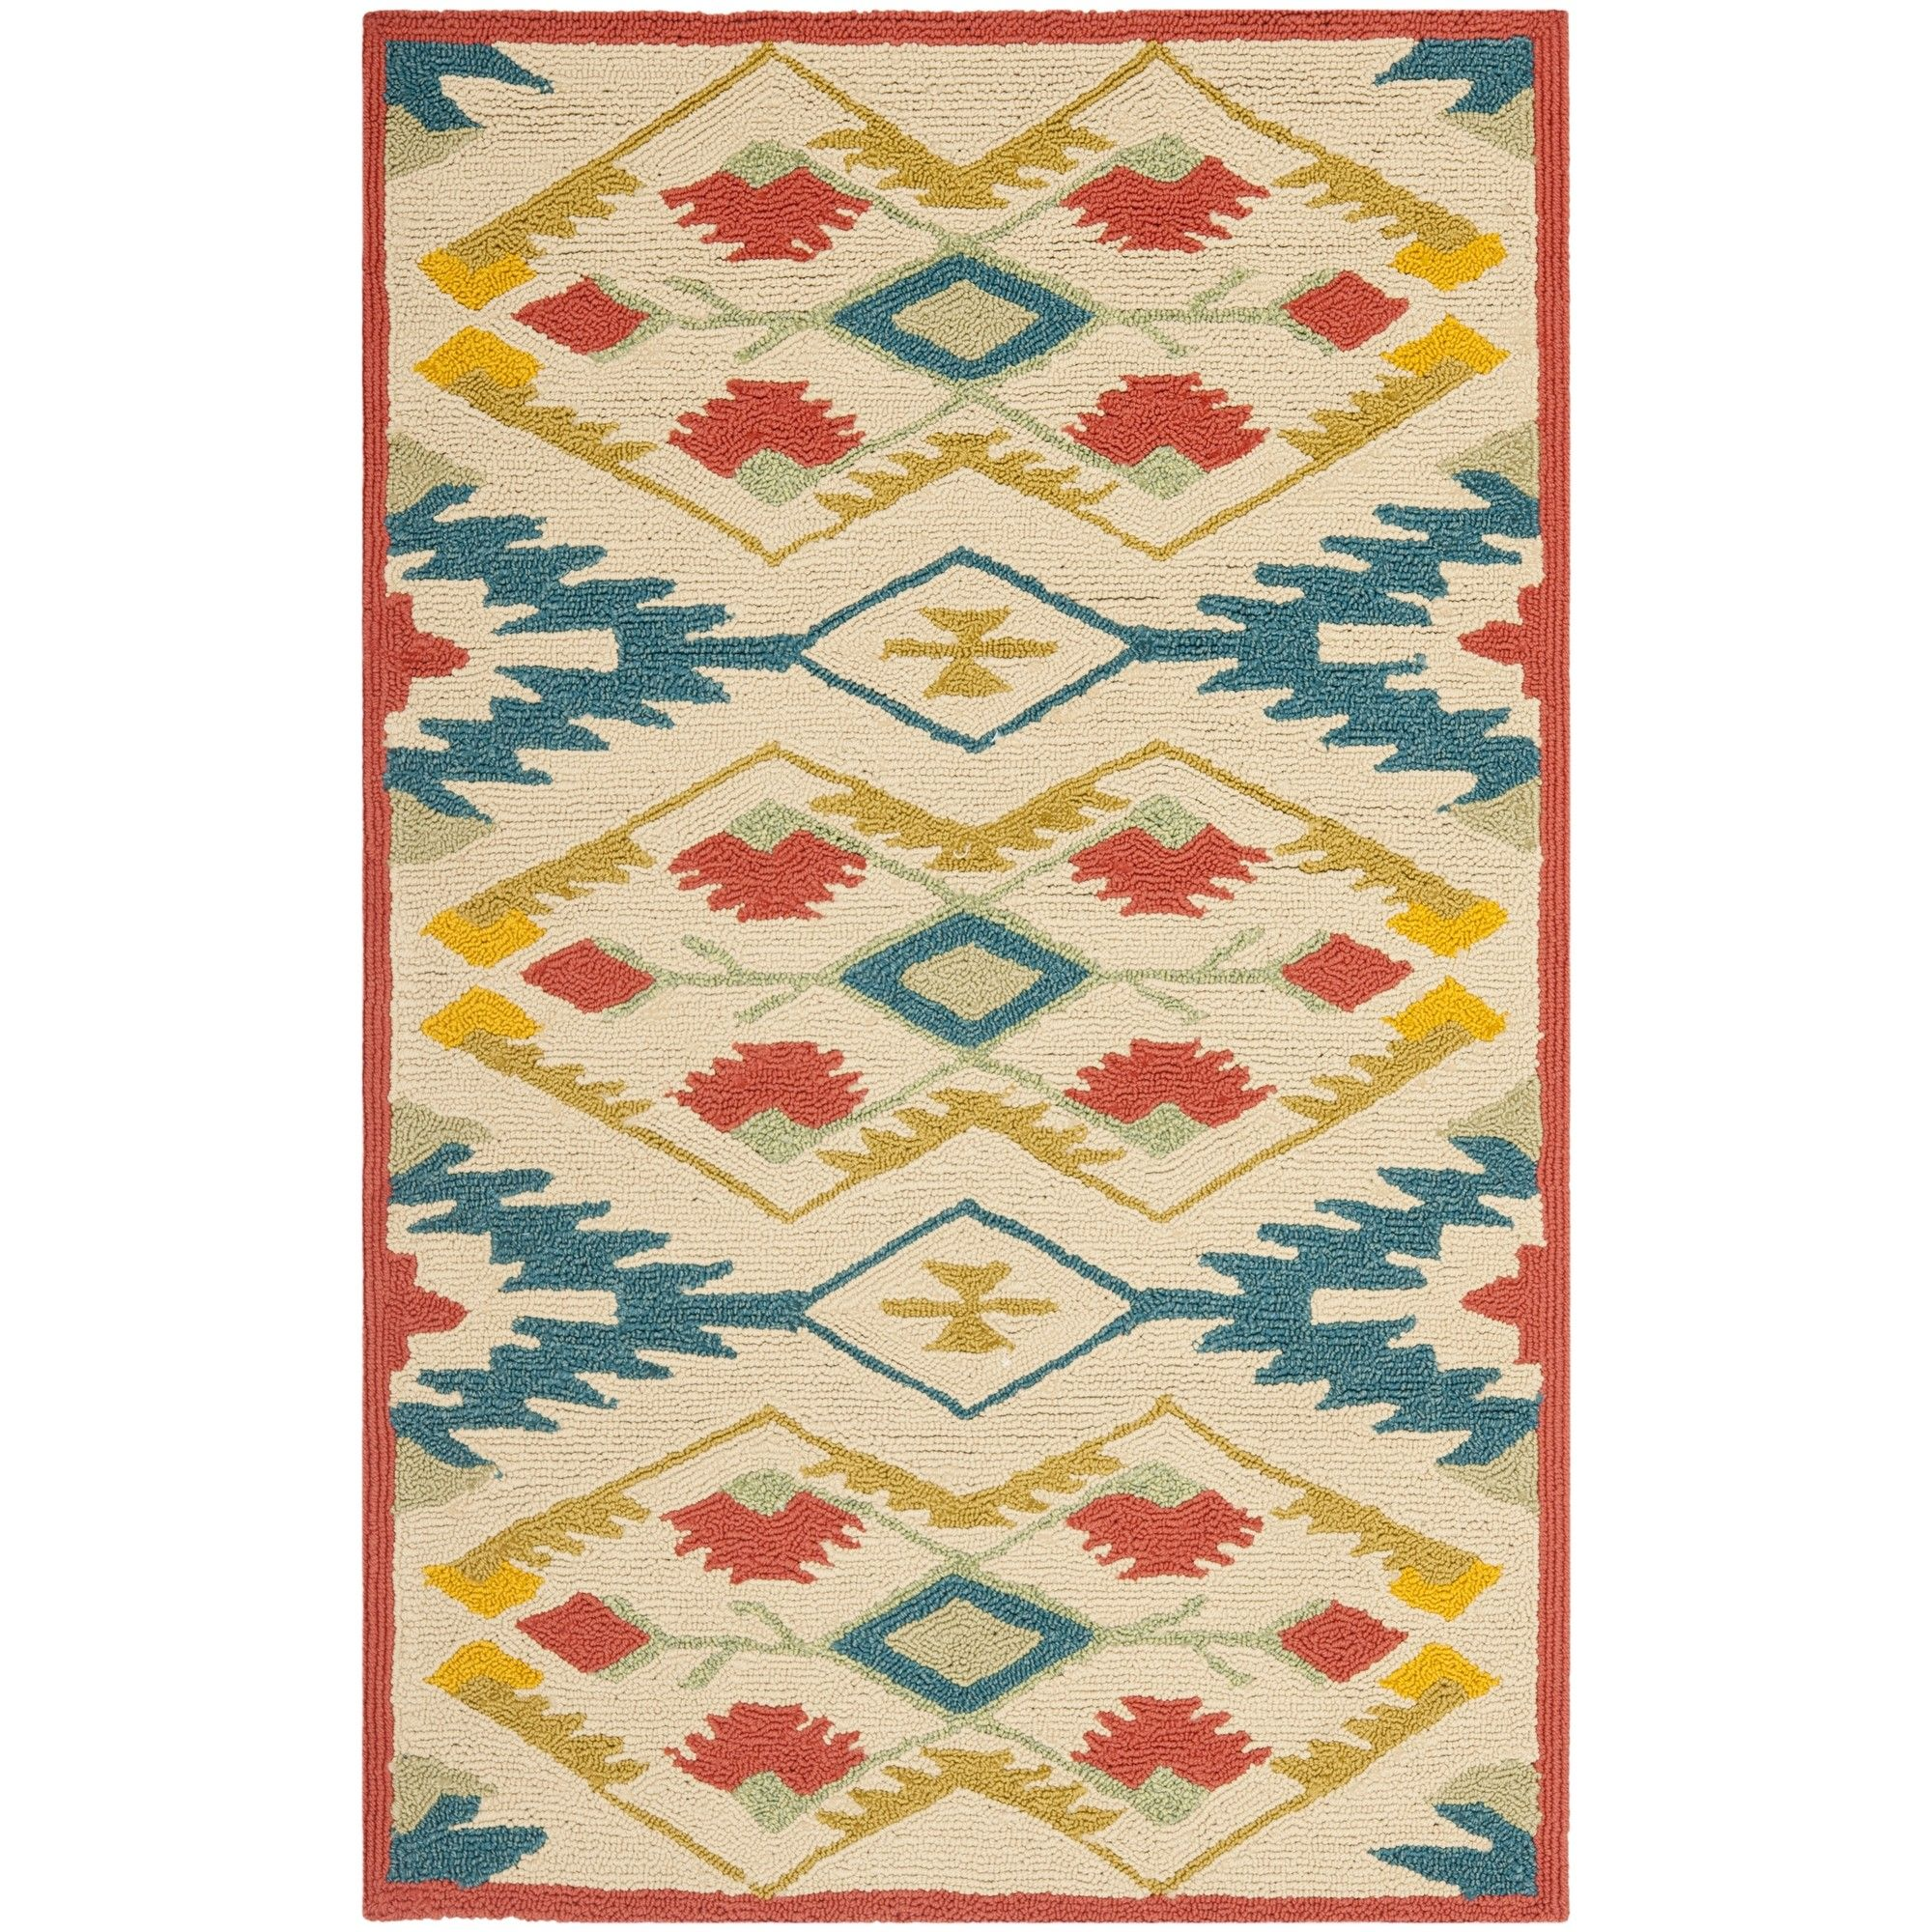 Puri Yellow And Blue Outdoor Indoor Area Rug Products Pinterest